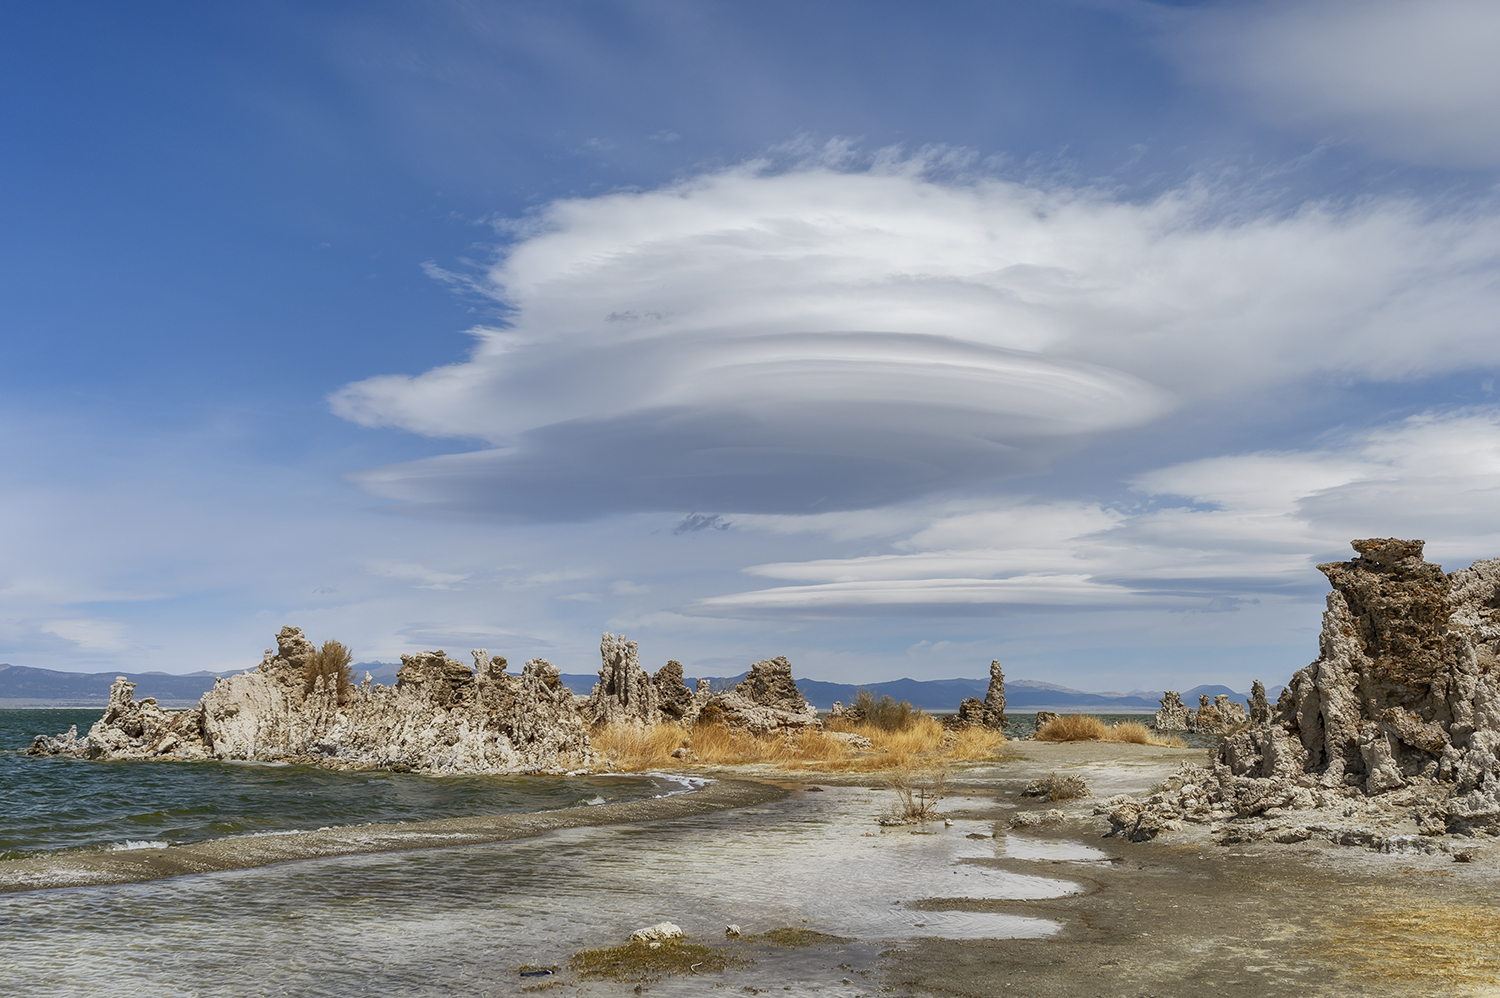 East Sierra landscape images from Mono Lake, CaliforniaImage No: 18-007982  Click HERE to Add to Cart